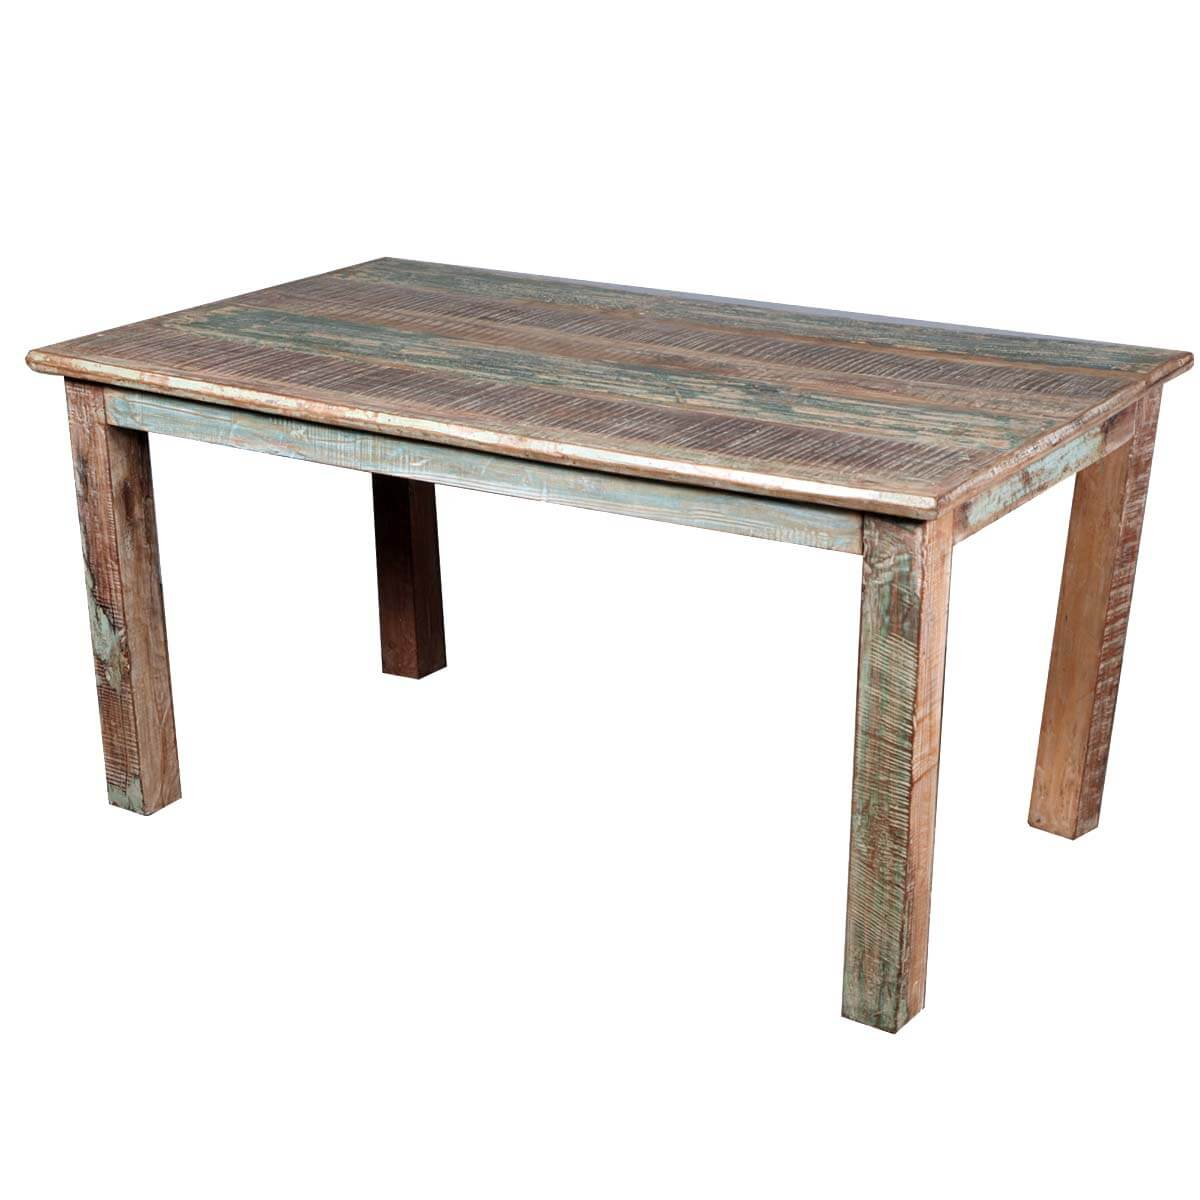 Rustic reclaimed wood distressed kitchen dining table for Dinner table wood